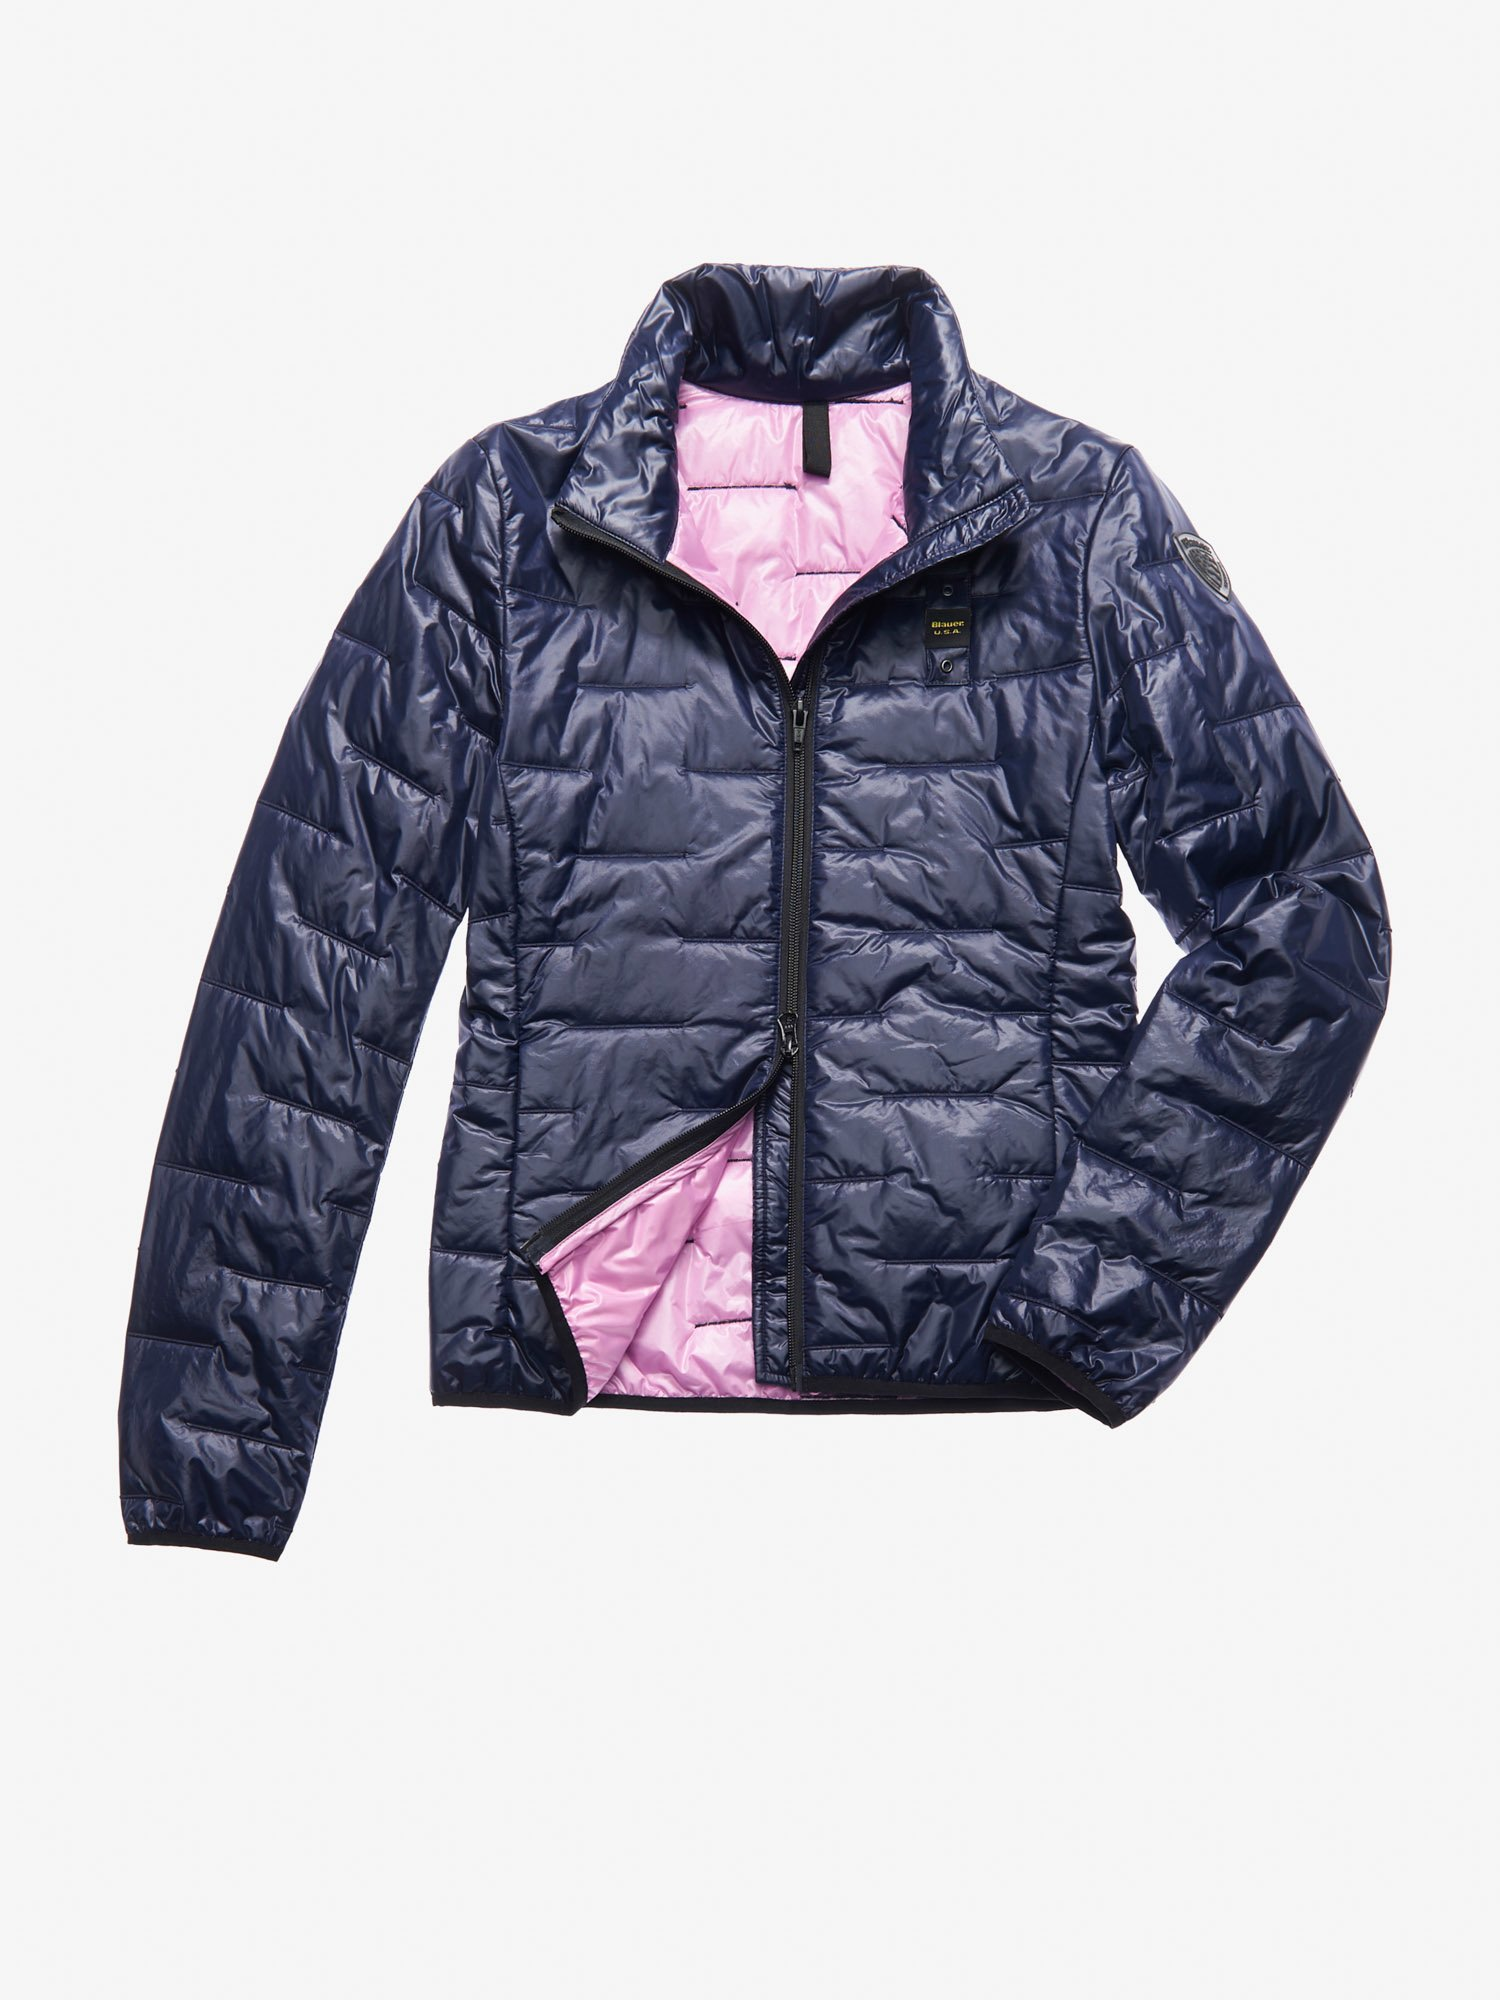 SANCHEZ SHINY 100 GR PADDED JACKET - Blauer